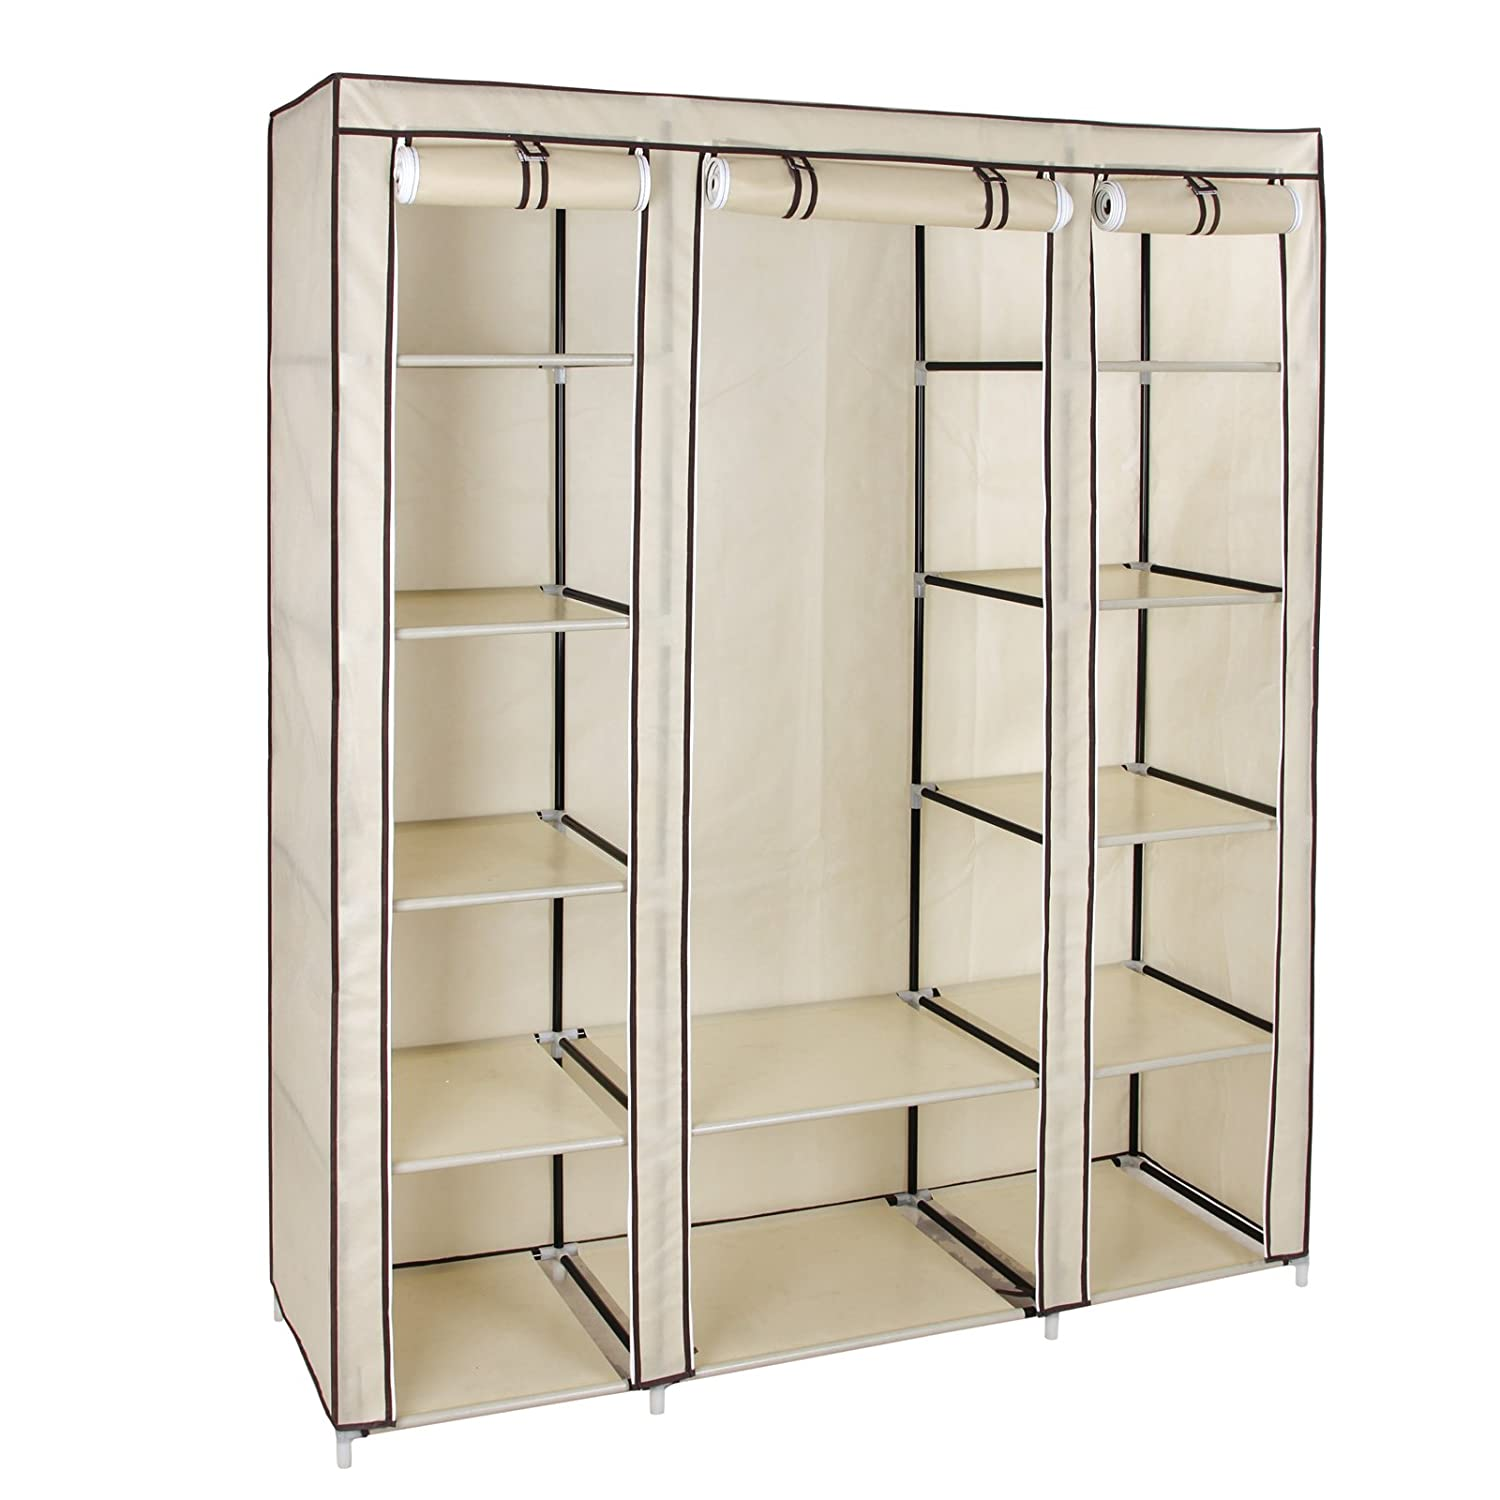 Bedroom furniture wardrobes - Songmics Non Woven Fabric Wardrobe Cupboard Bedroom Furniture Storage 150 X 45 X 175 Cm Beige Lsf03m Amazon Co Uk Kitchen Home